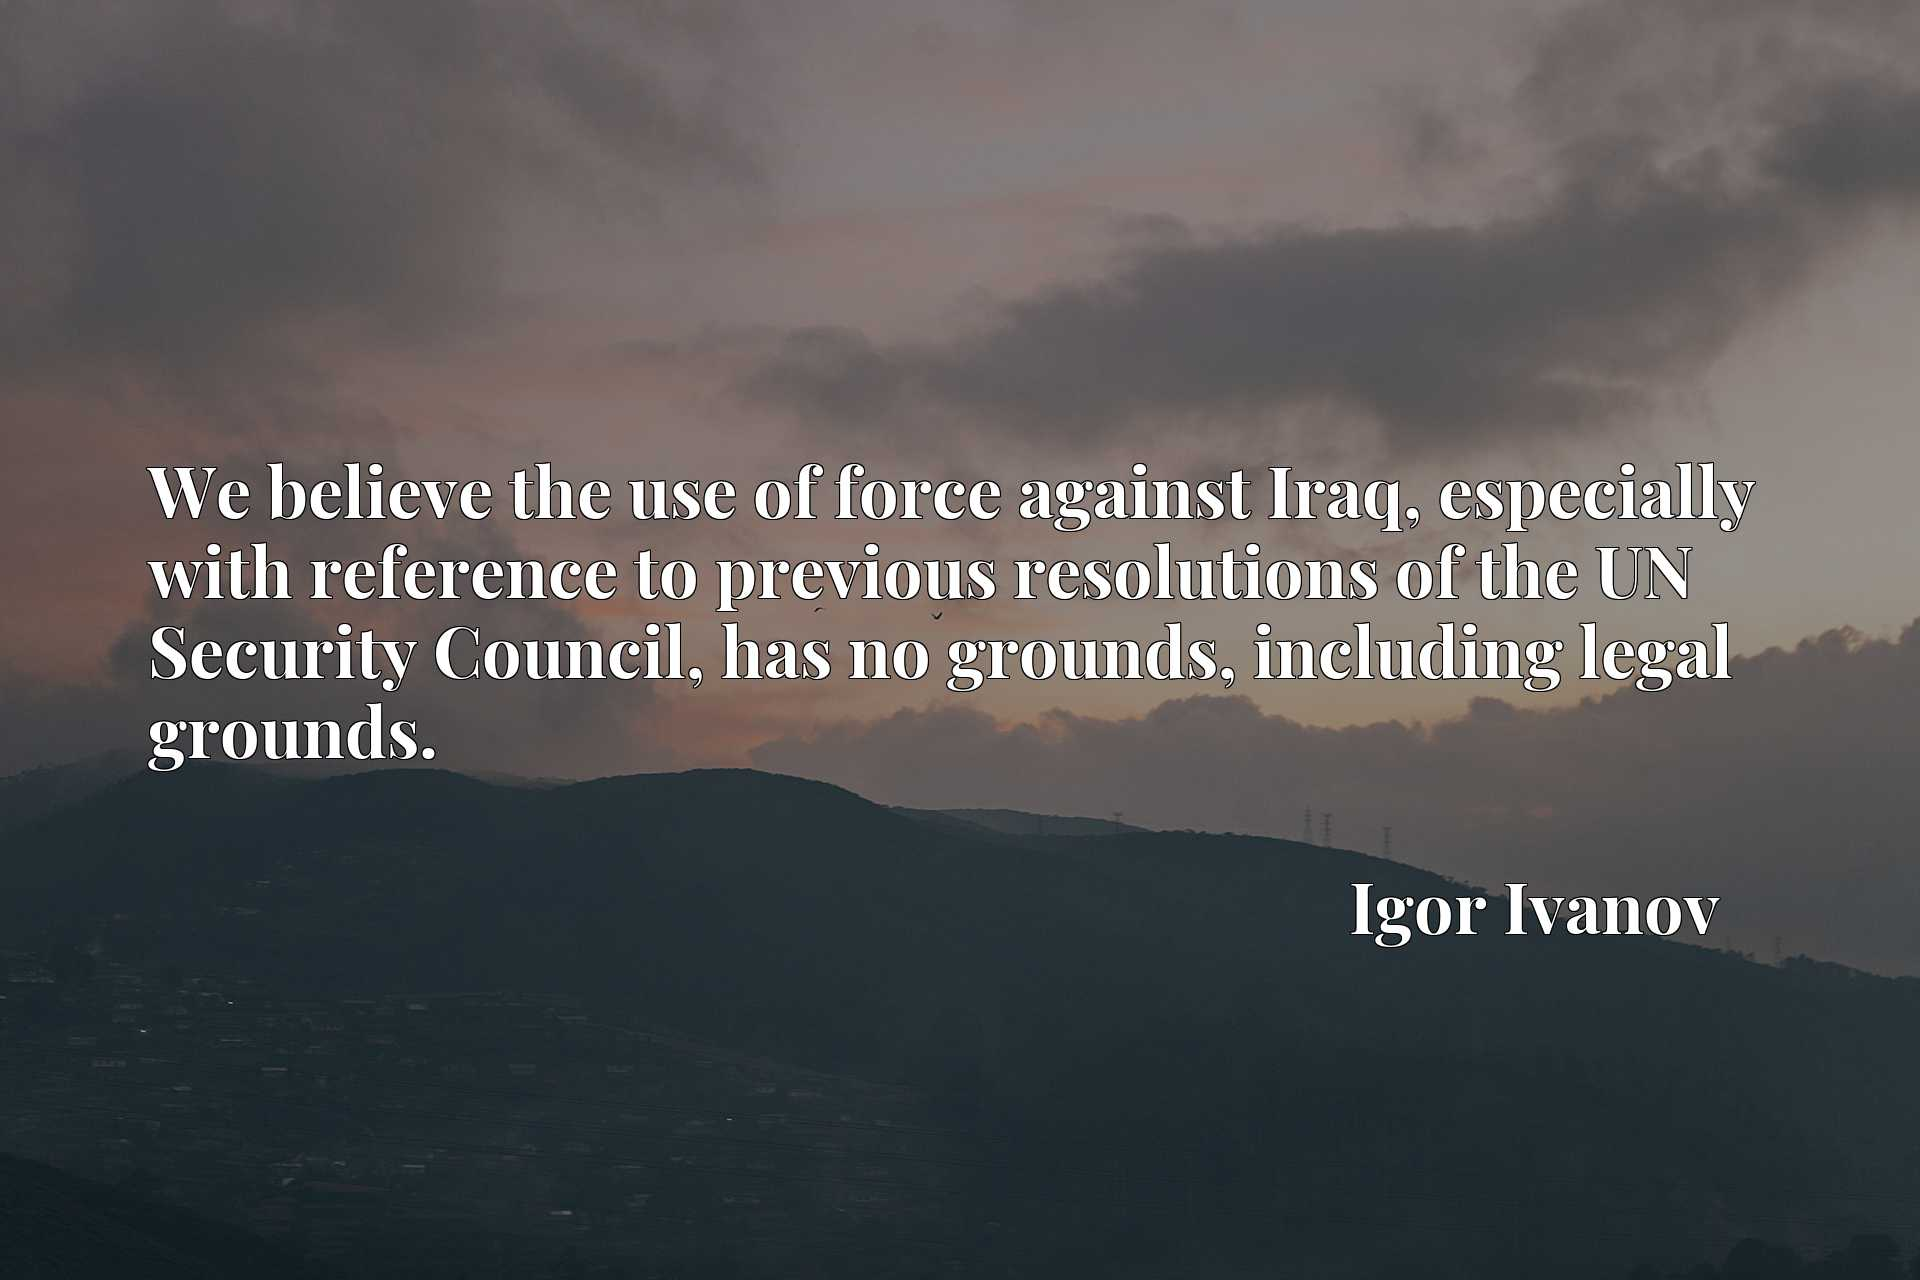 We believe the use of force against Iraq, especially with reference to previous resolutions of the UN Security Council, has no grounds, including legal grounds.